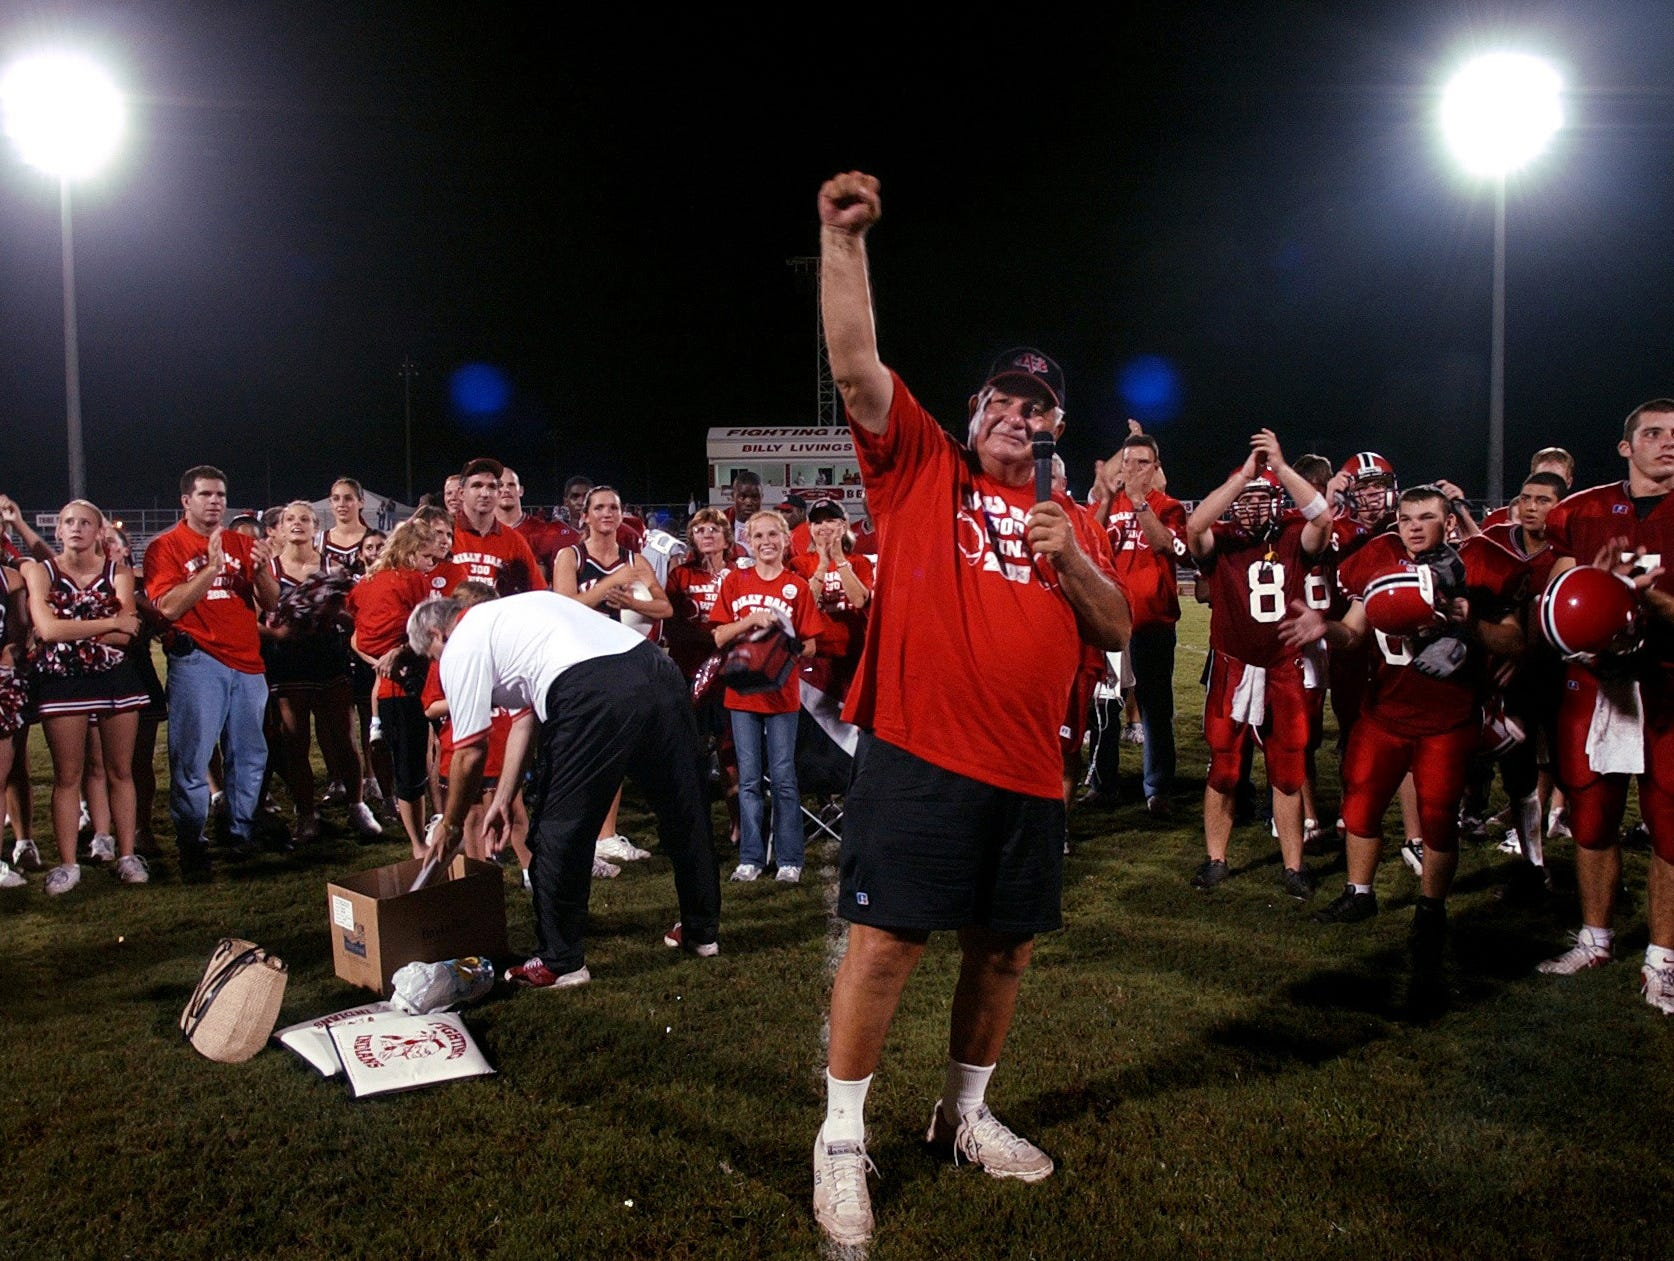 October 2, 2003 - Vero Beach High School head football coach Billy Livings gives a short speech thanking fans, family, coaches, players and everyone else who supported the football team during a celebration for Livings' 300th victory as head coach after the Indians defeated Wellington High School 20-0 at home.